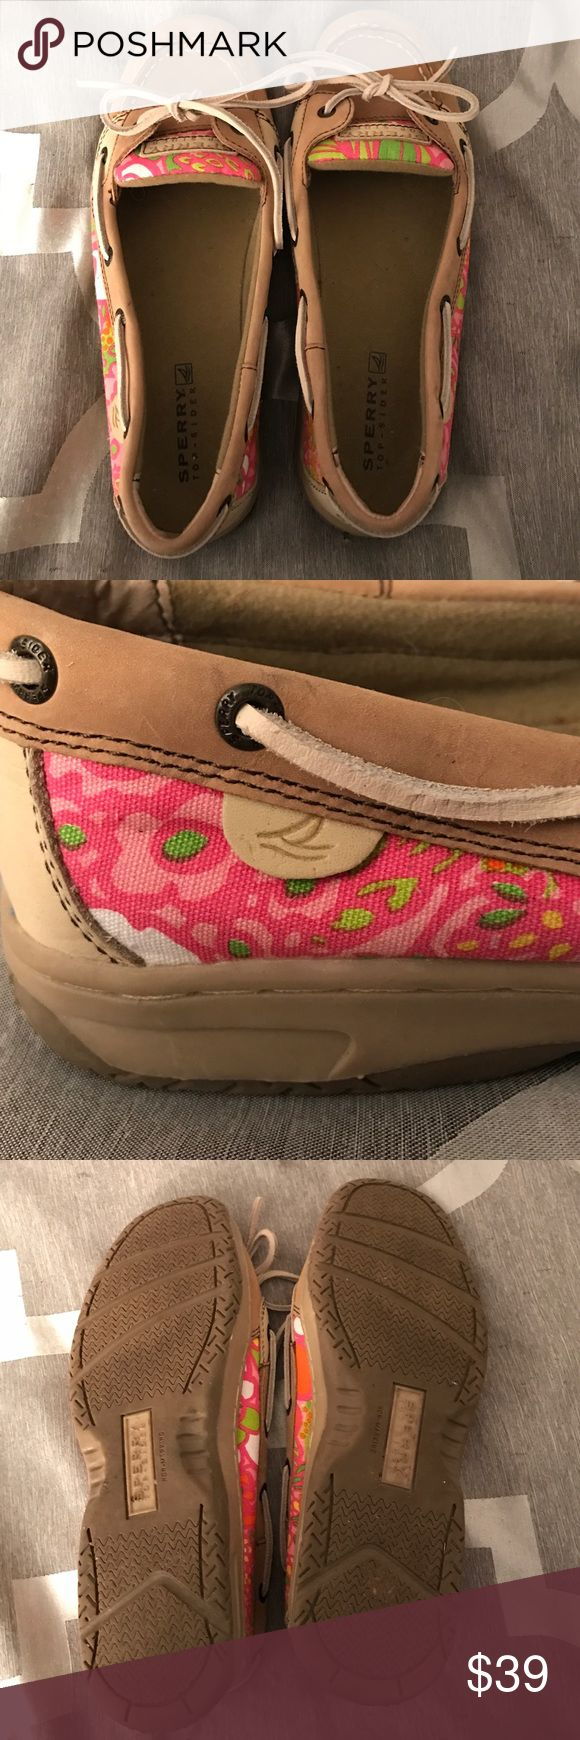 Sperry Angelfish size 6 Lightly used pink and green Sperry Angelfish boat shoes Sperry Top-Sider Shoes Flats & Loafers